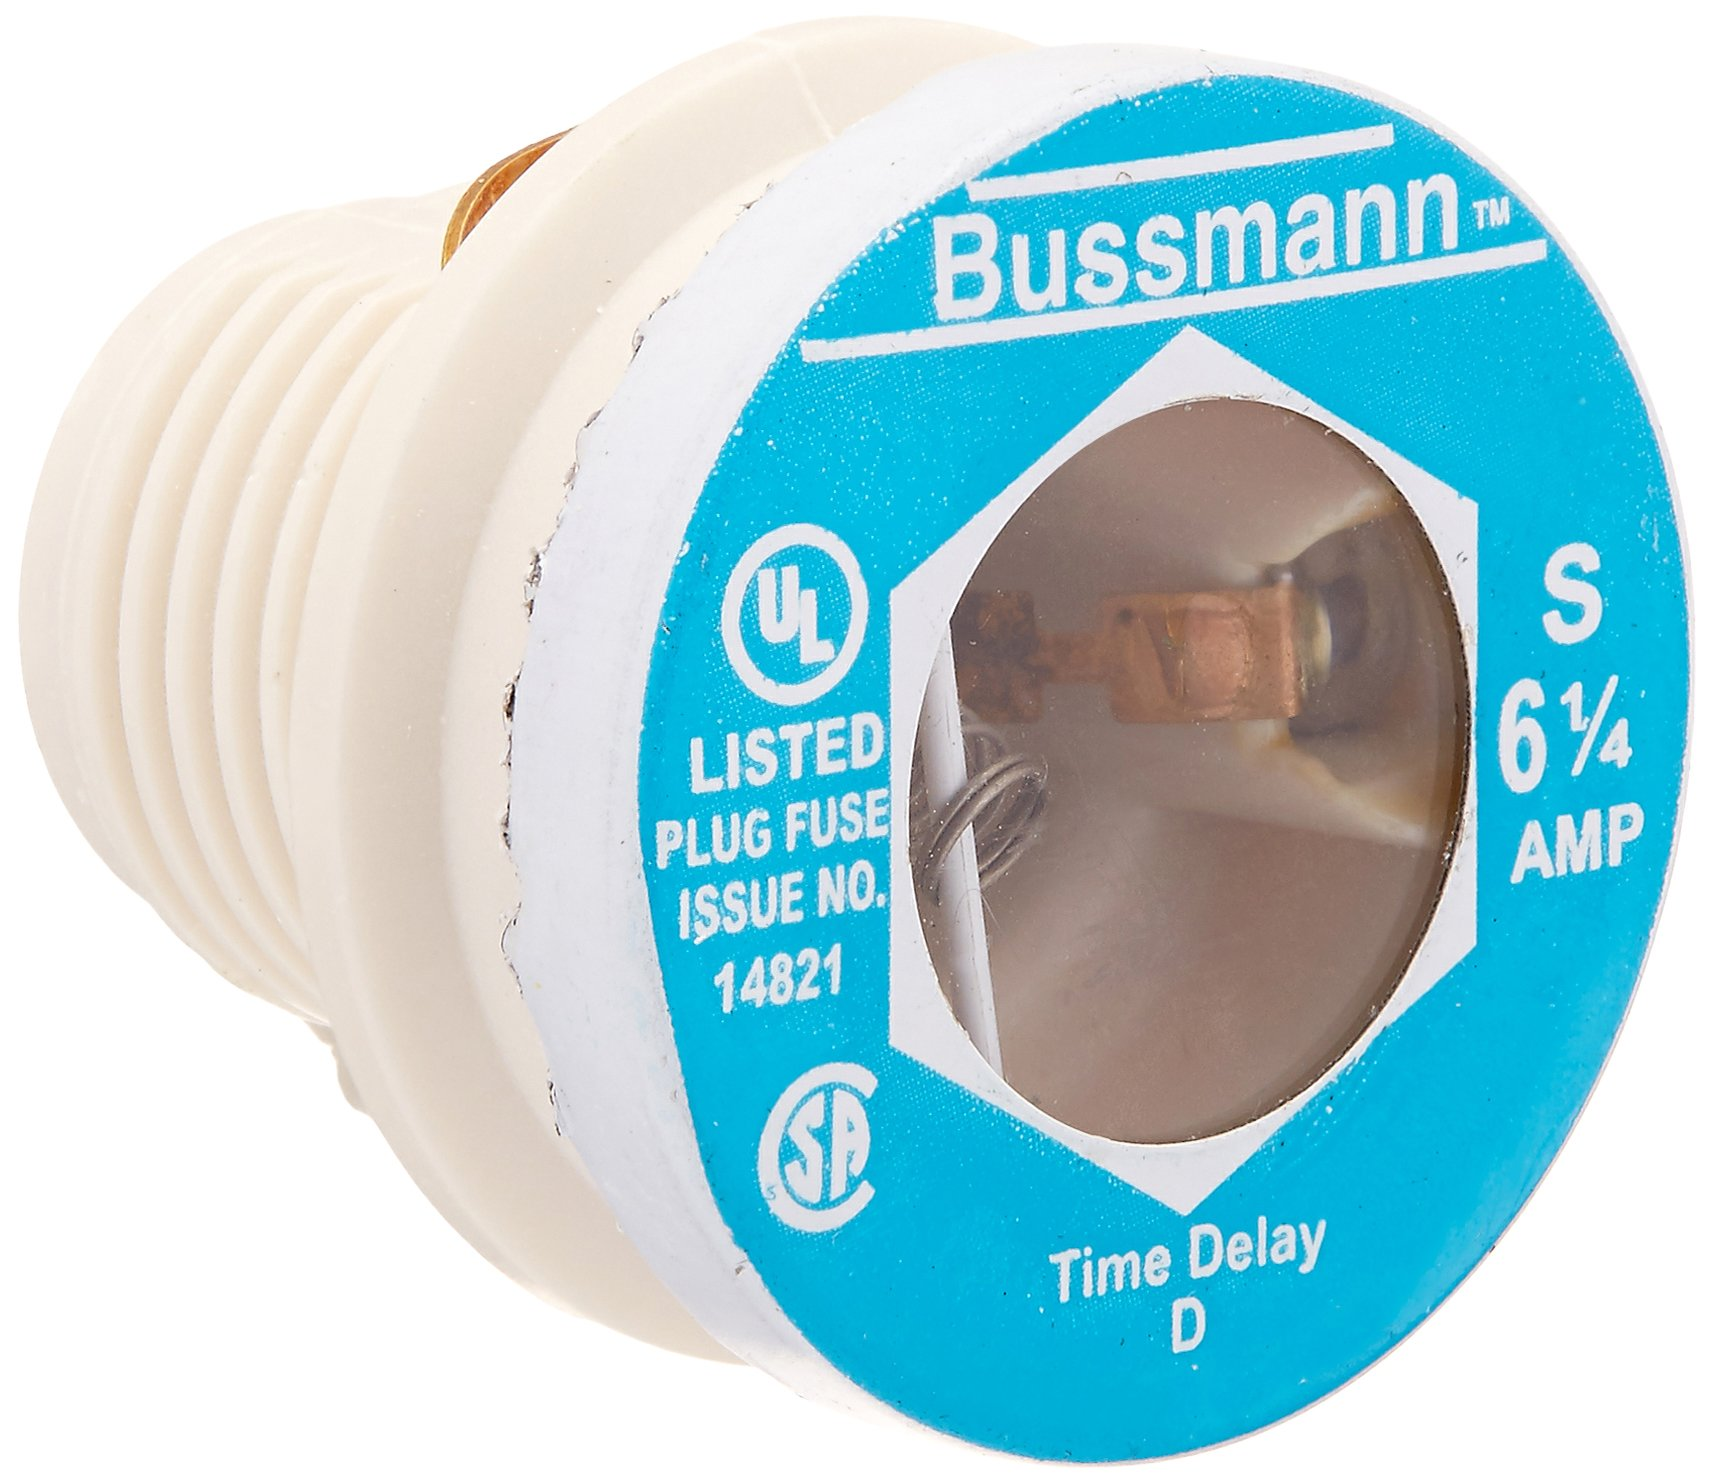 Bussmann S-6-1/4 6-1/4 Amp Type S Time-Delay Dual-Element Plug Fuse Rejection Base, 125V UL Listed, 4-Pack